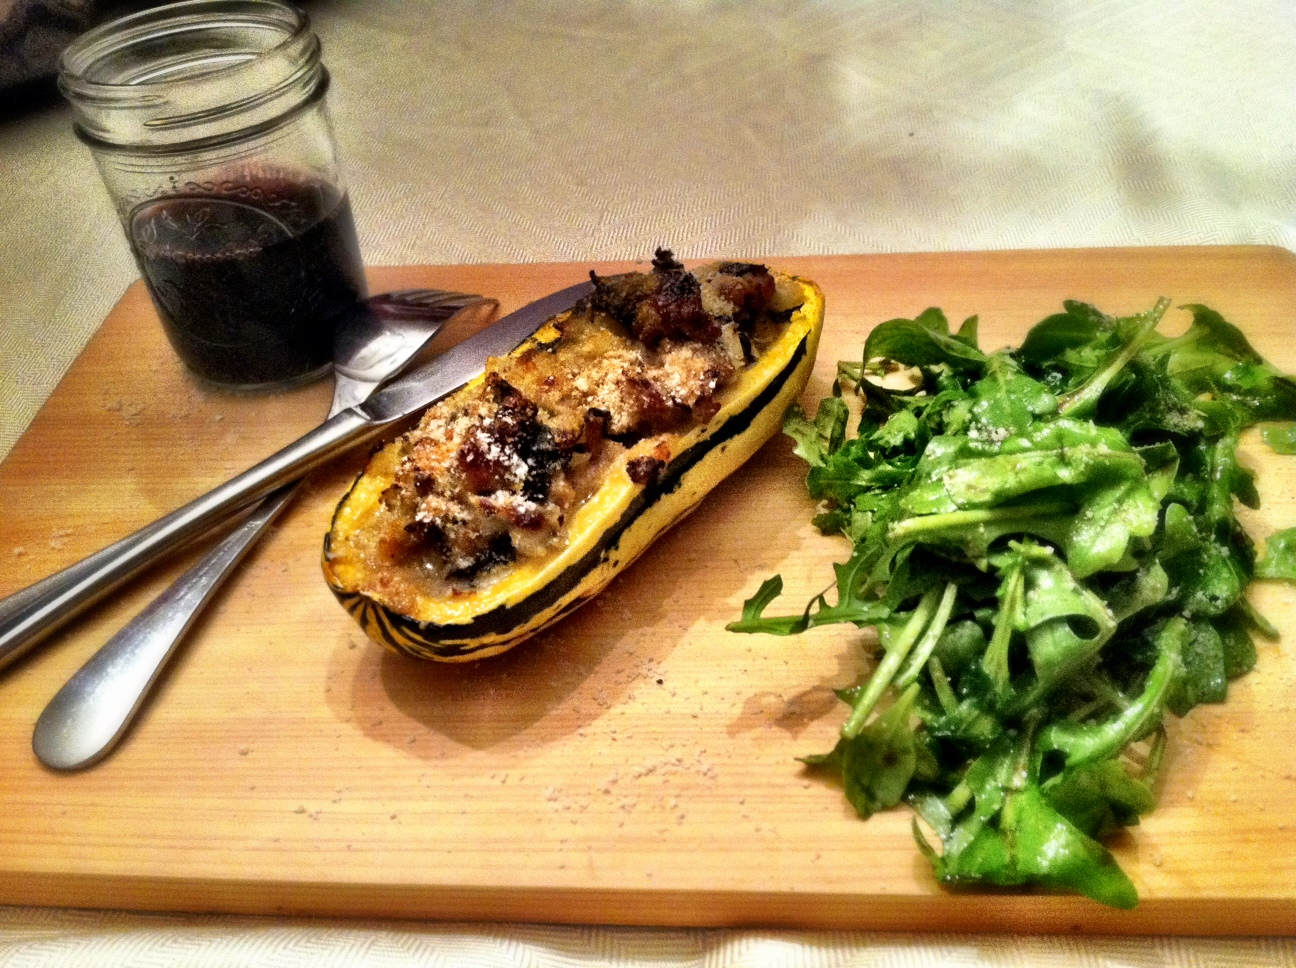 We served our squash with a simple arugula salad. The flavors screamed ...